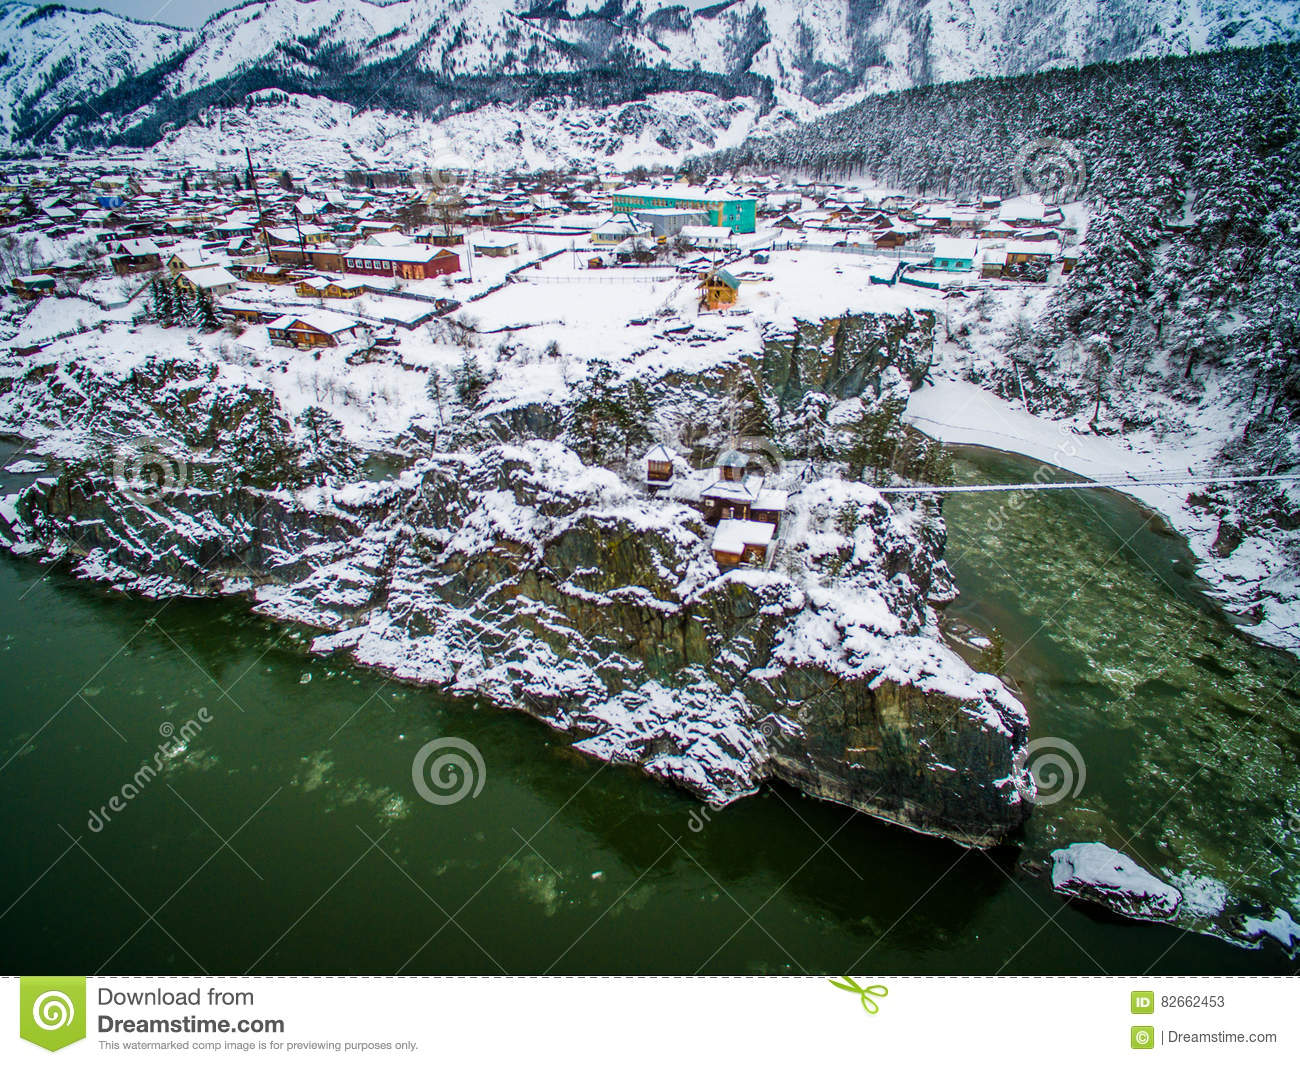 Temple, patmos, altai, a view from air